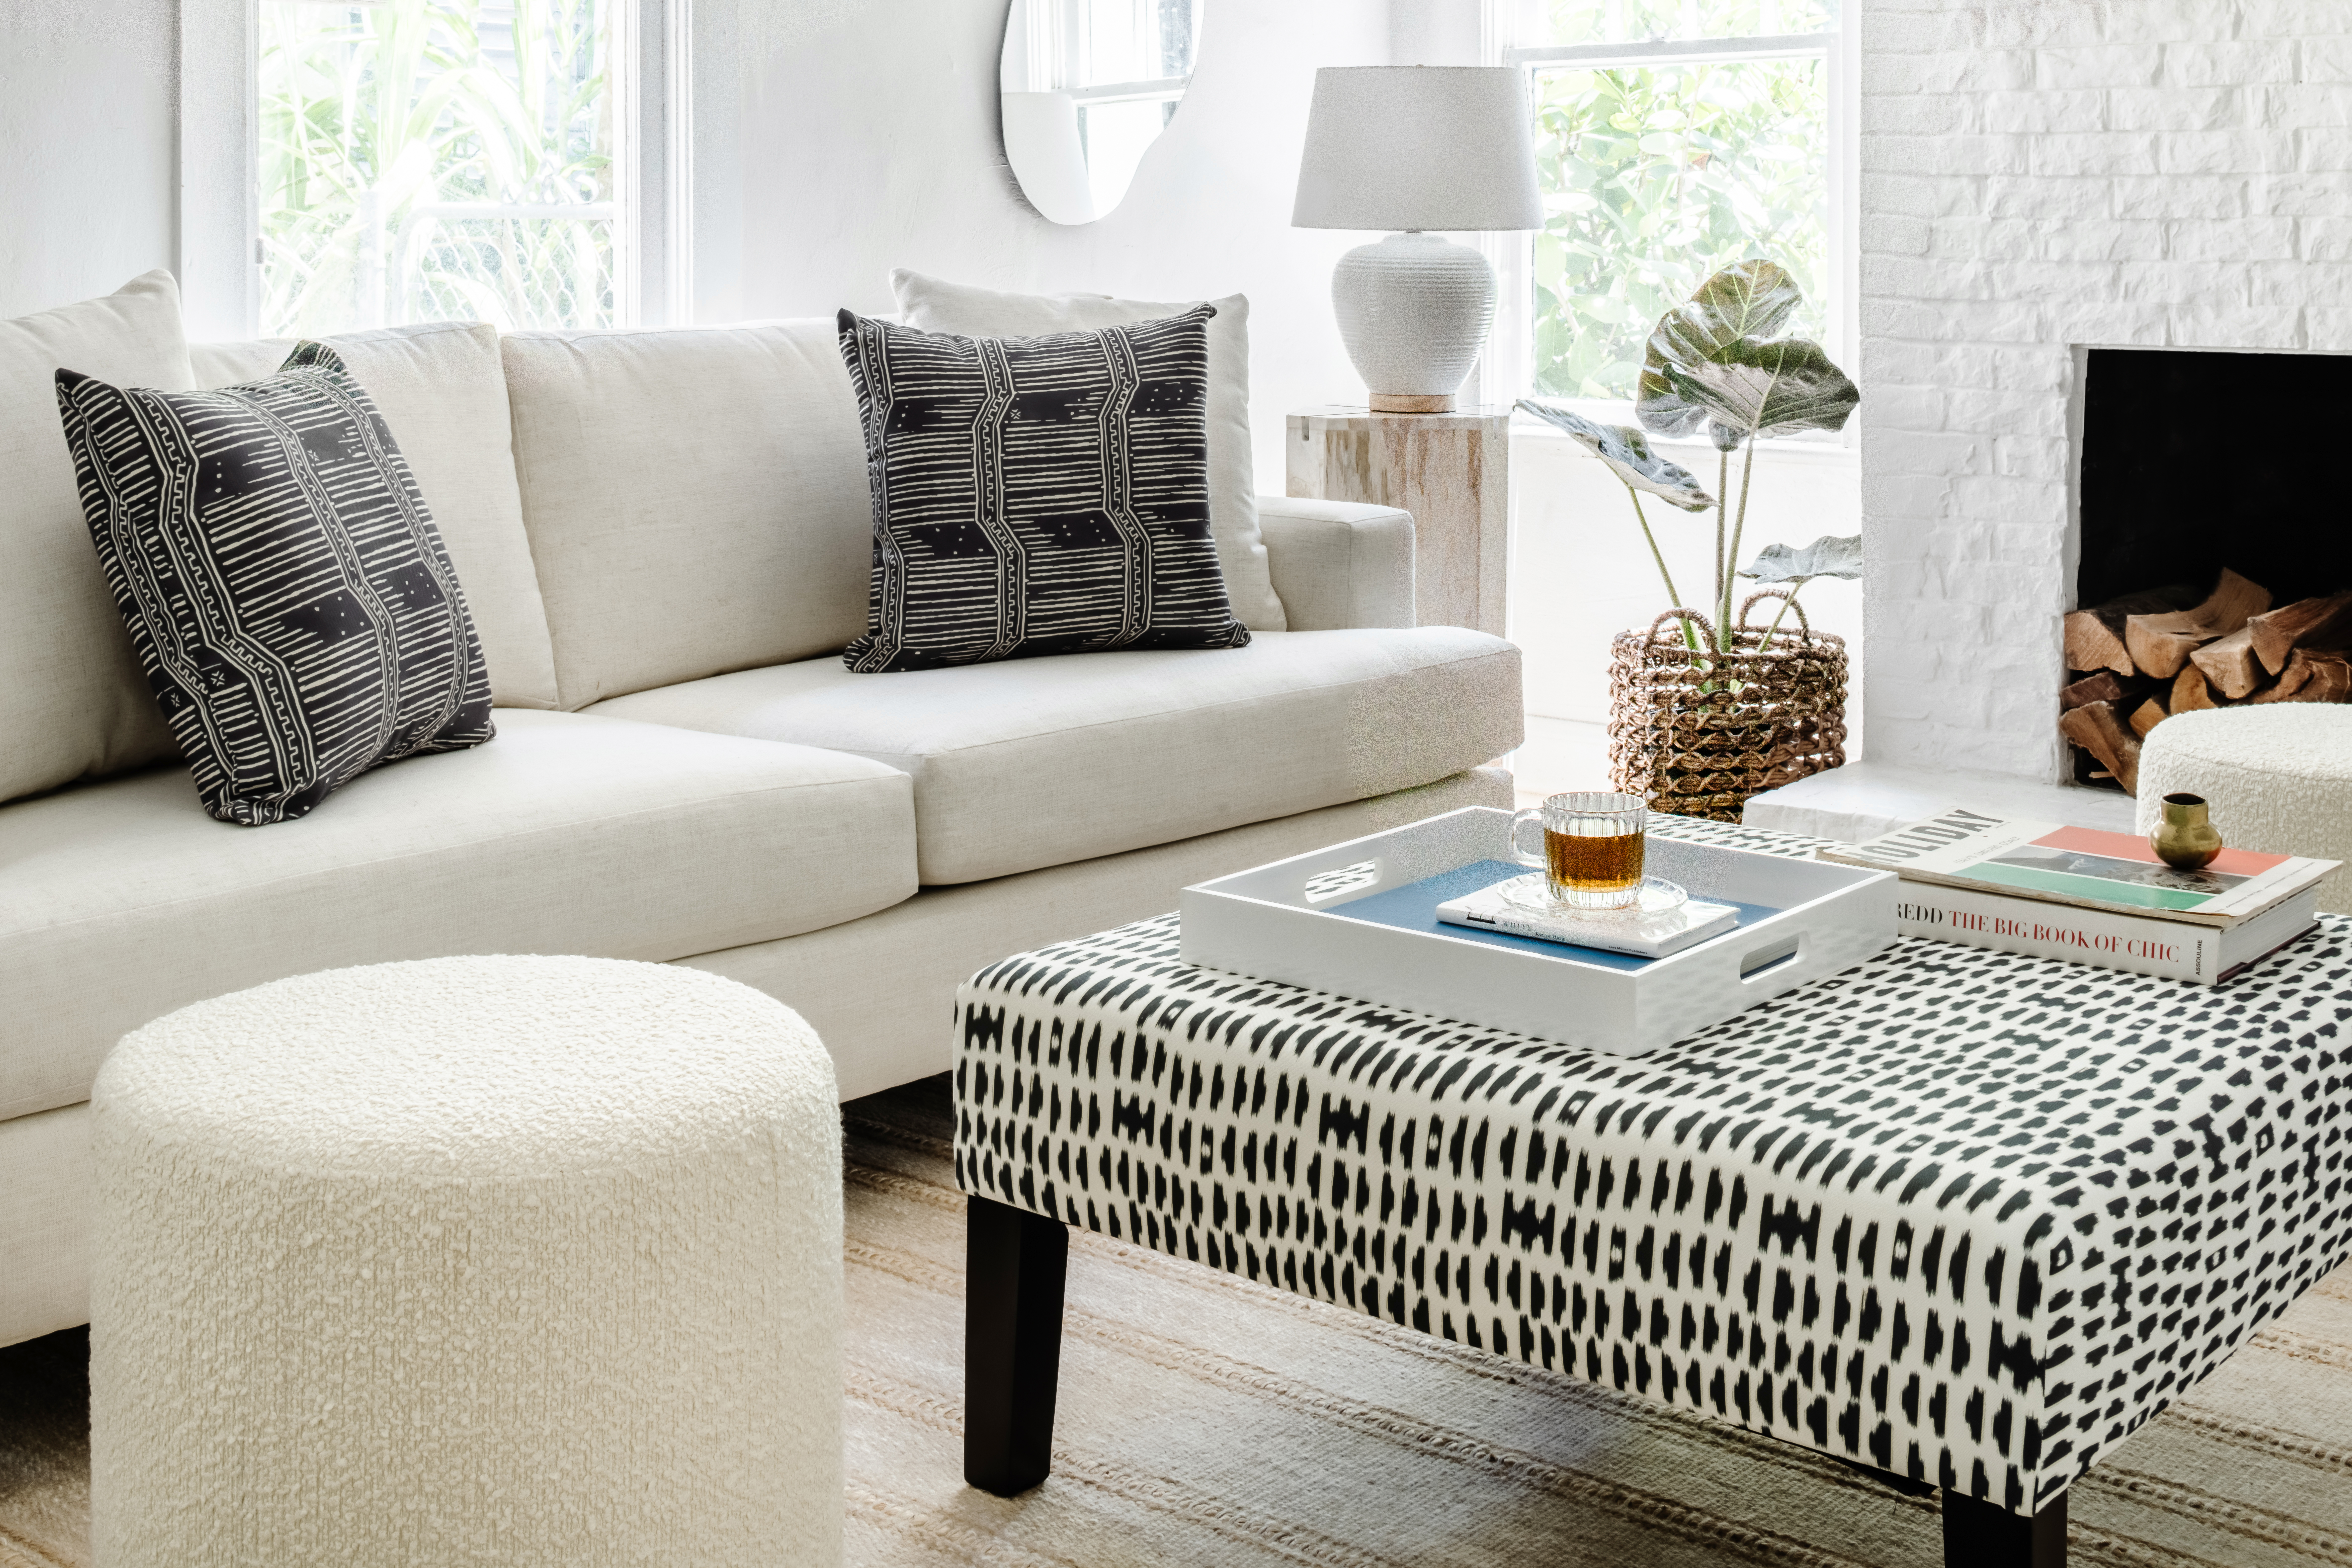 How to divide a living room into a bedroom